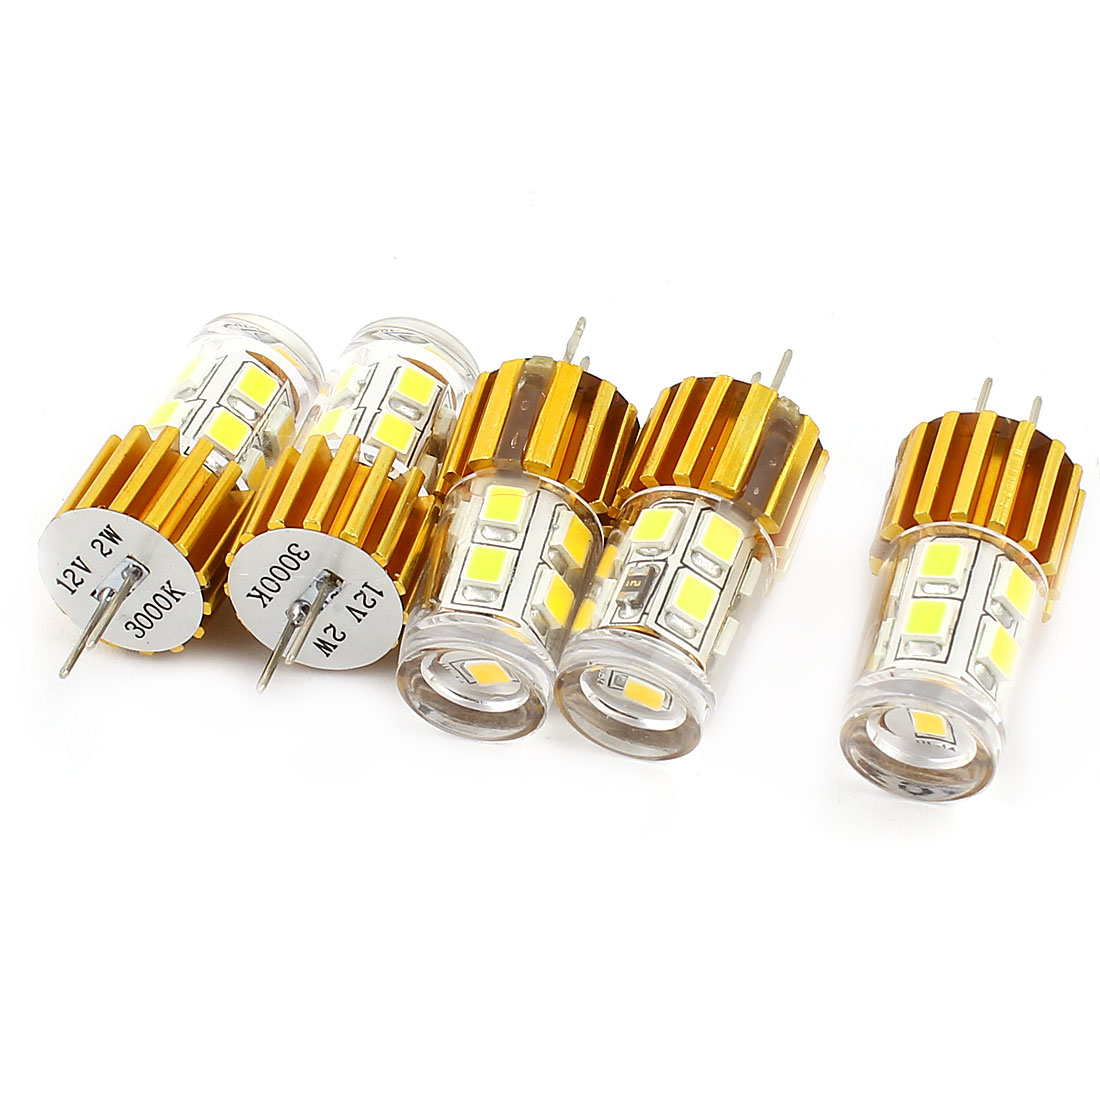 5PCS 180LM G4 Base 2W 2835 SMD 12 LED Bulb Light Warm White AC/DC 12V